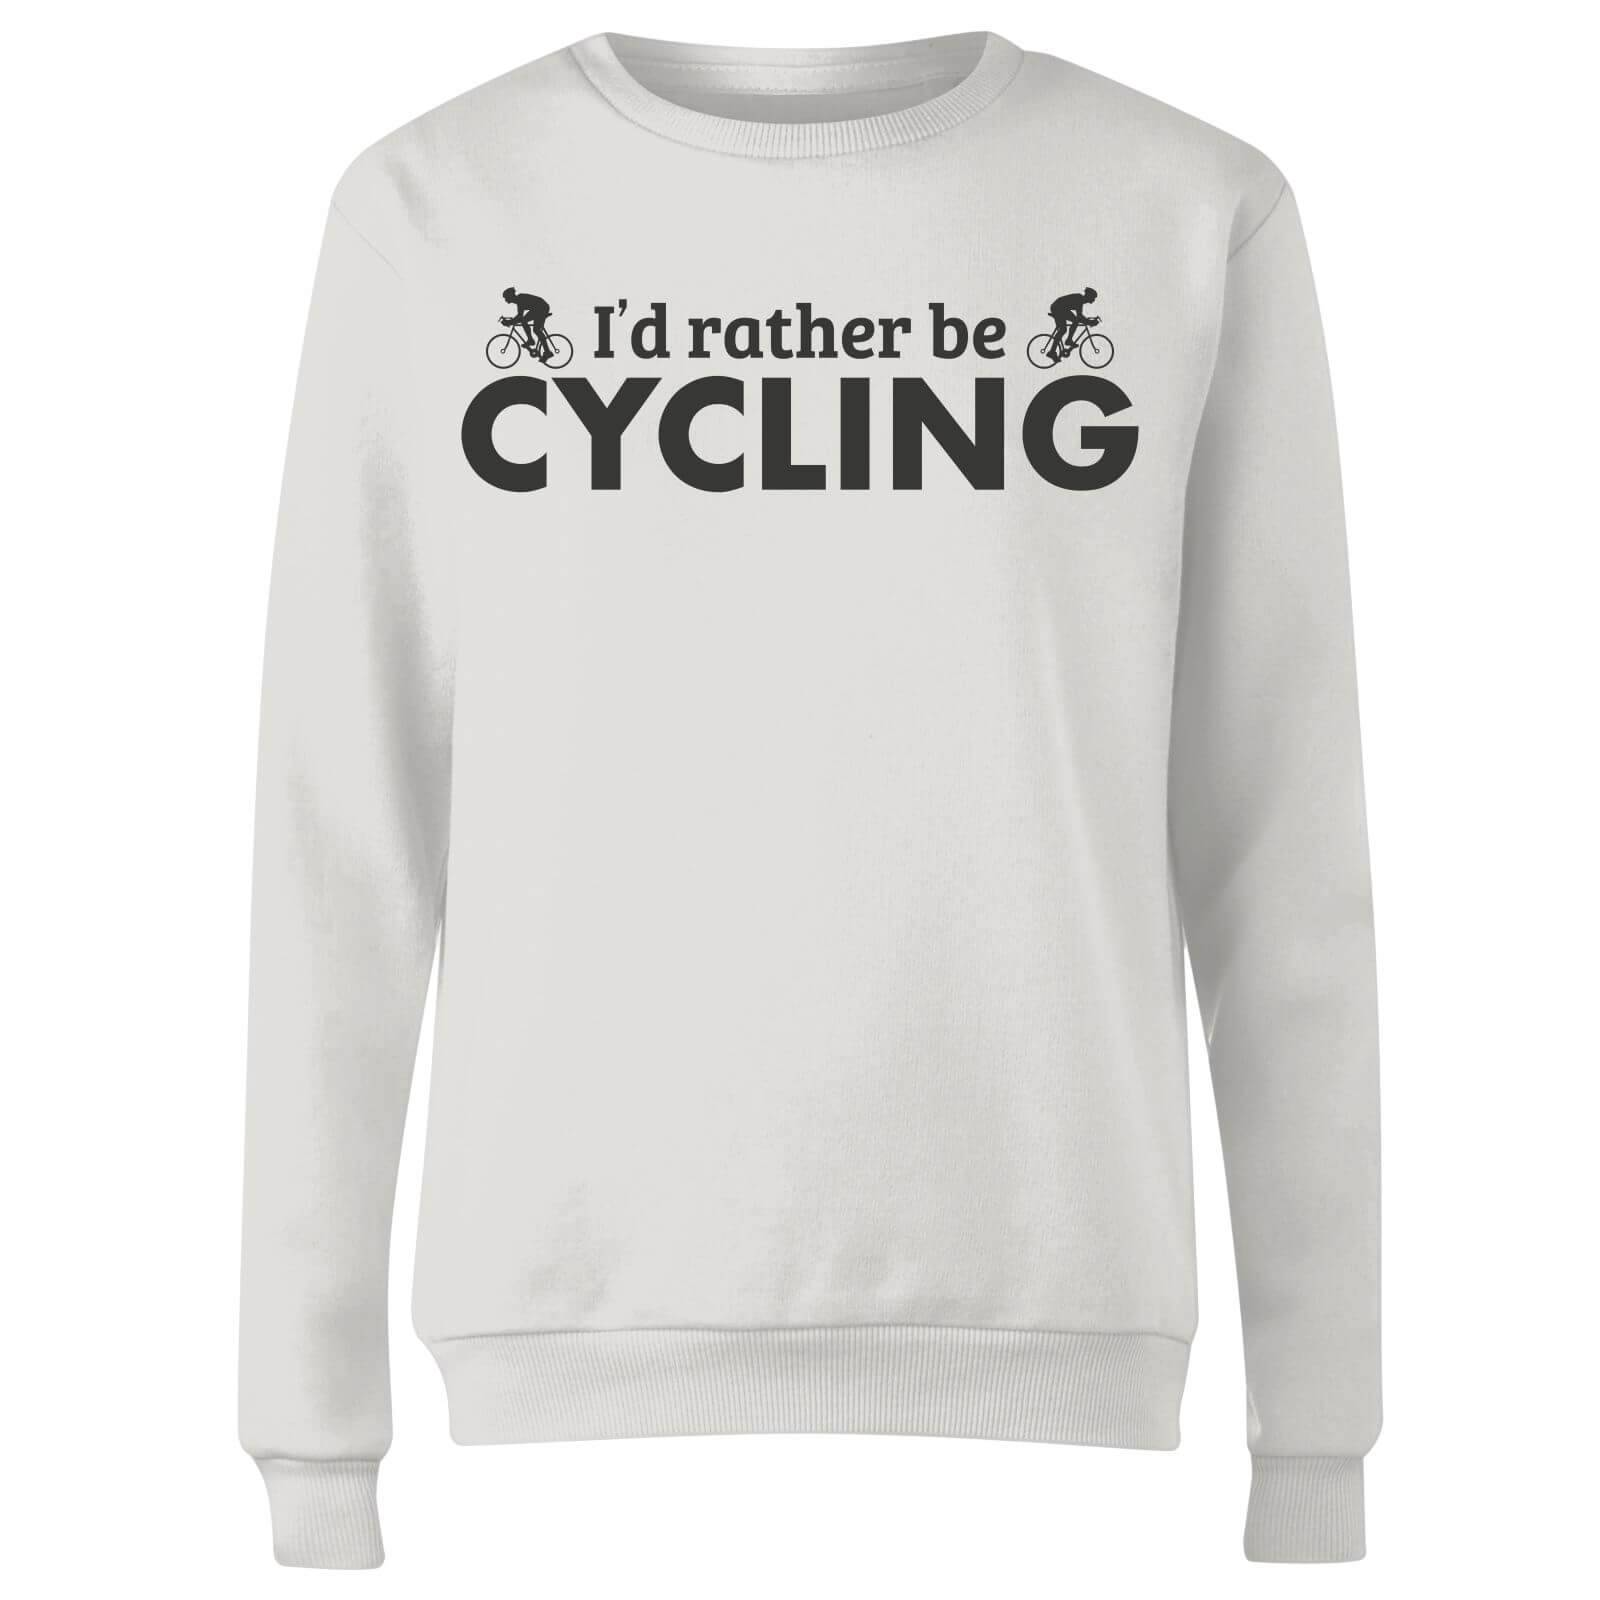 The Dad Collection I'd Rather be Cycling Women's Sweatshirt - White - XL - White